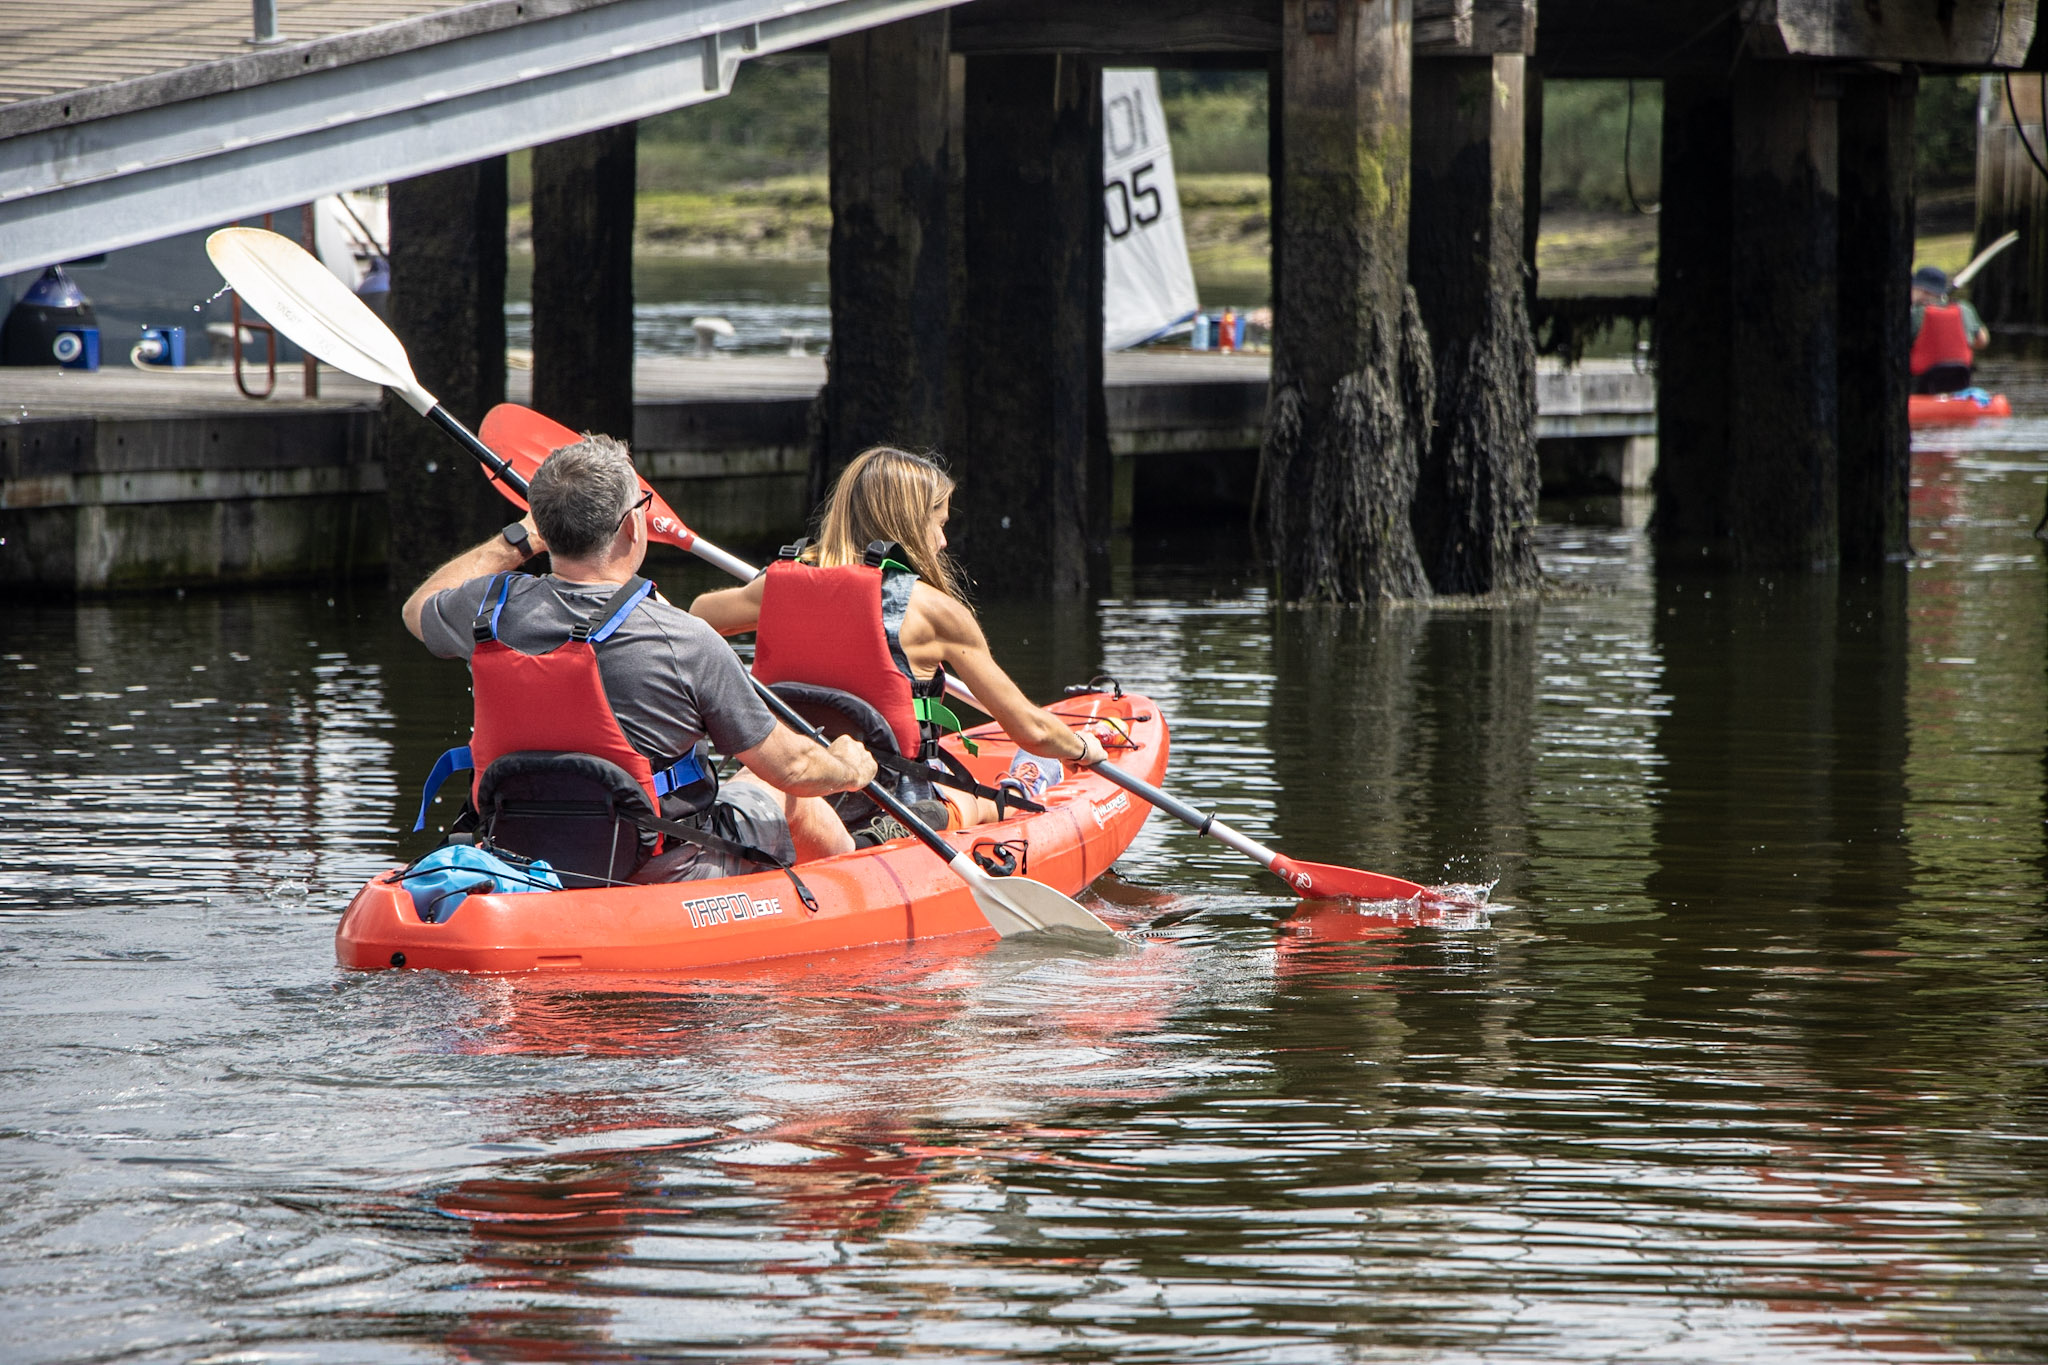 Looking for different activities for couples? Hire some kayaks and hit the water!